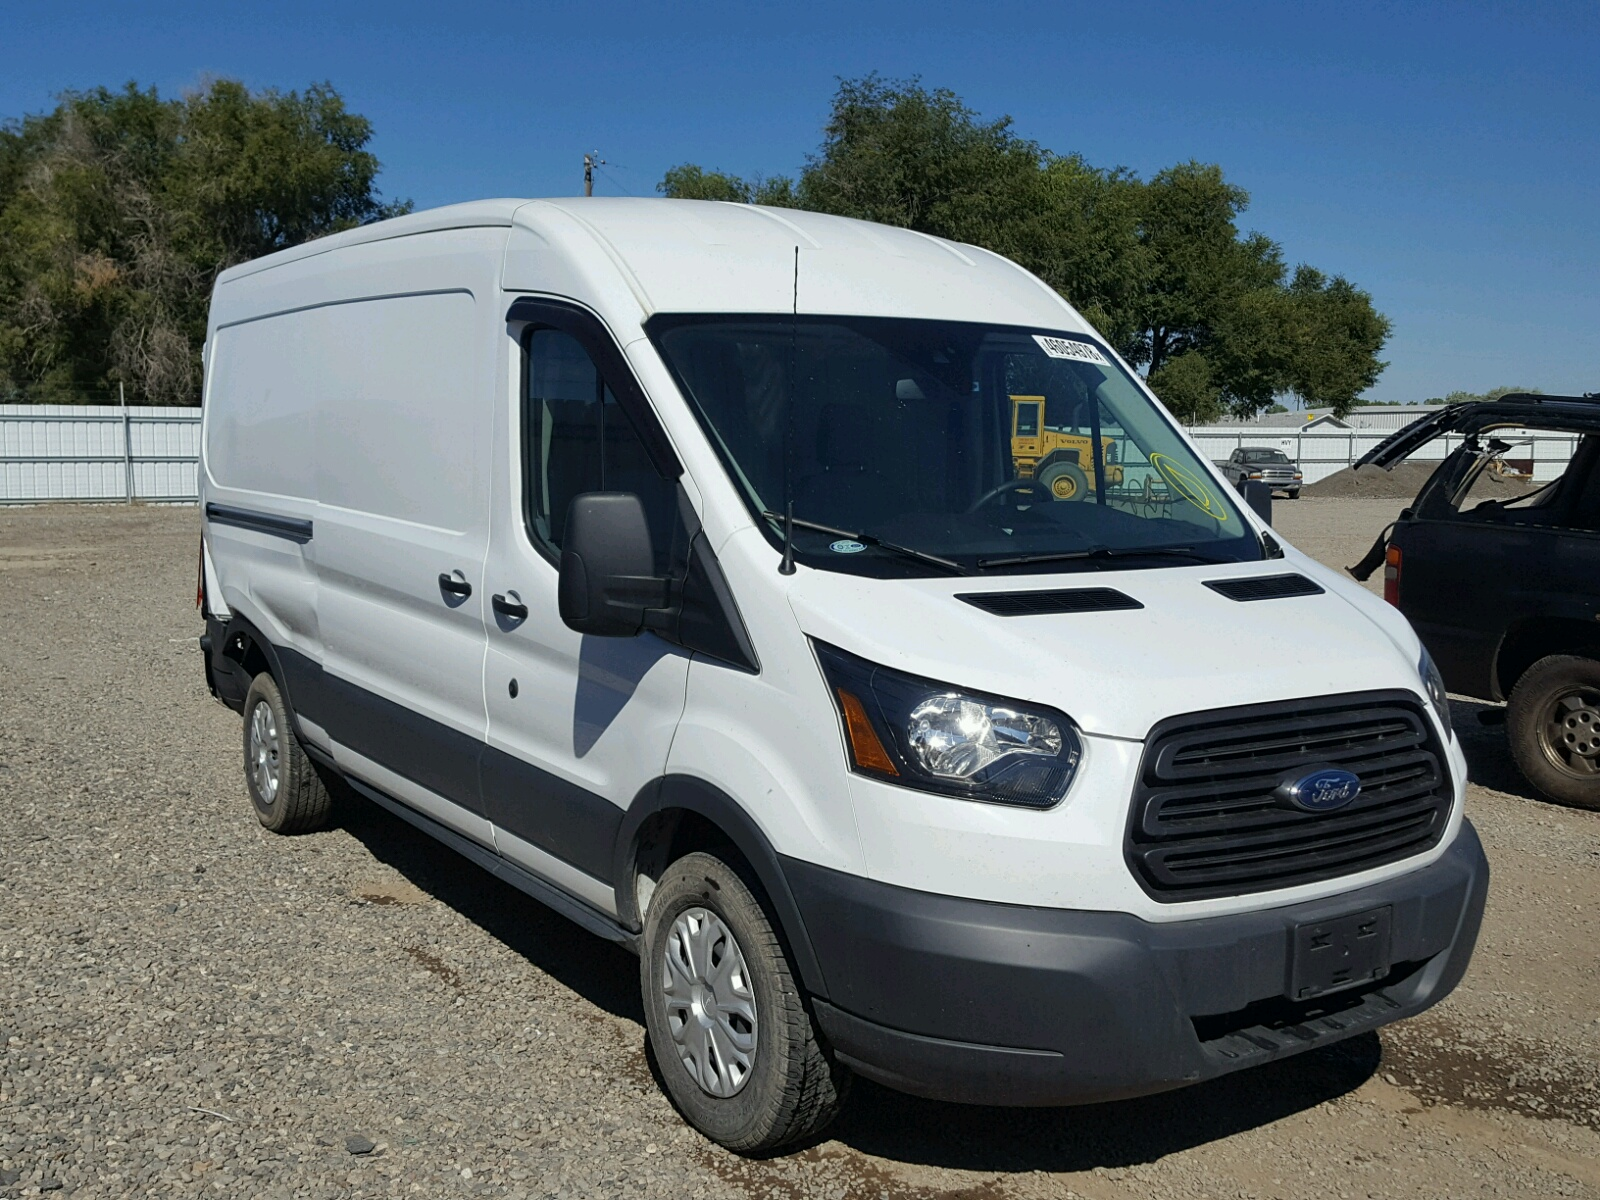 Salvage 2016 Ford TRANSIT T for sale